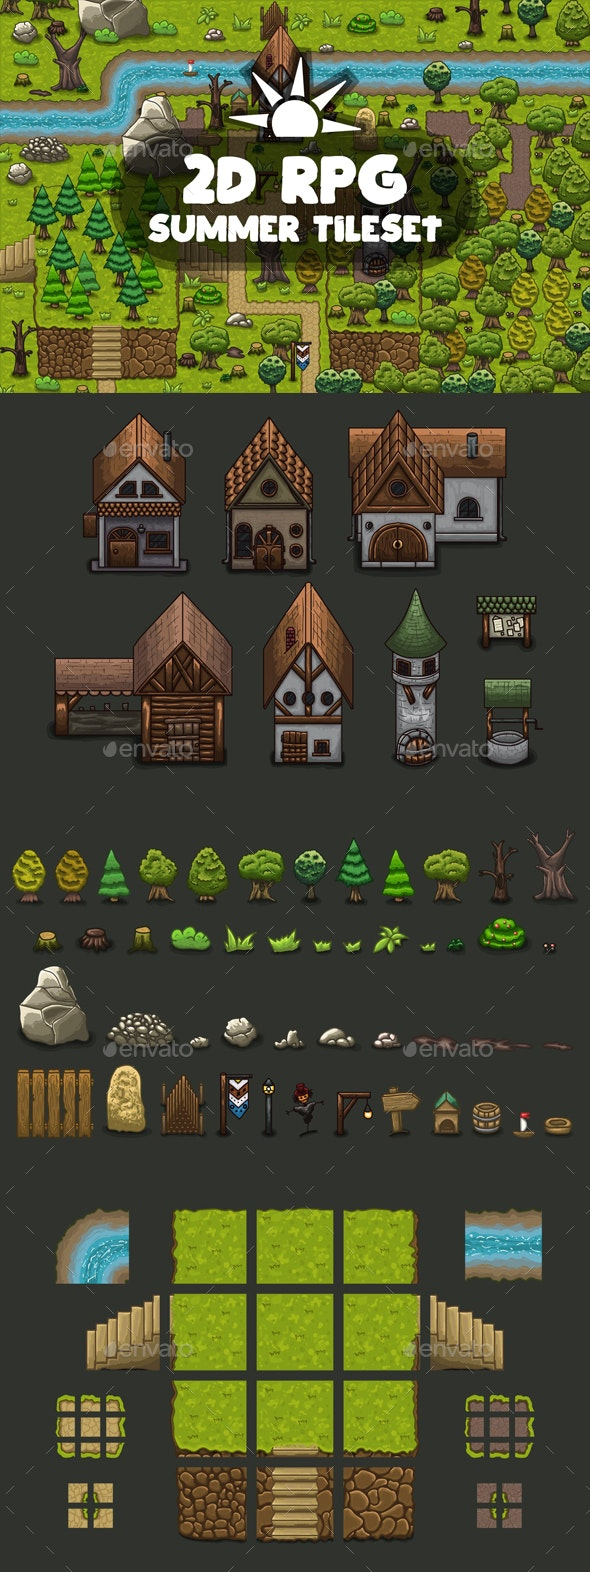 RPG Summer Tileset - Tilesets Game Assets